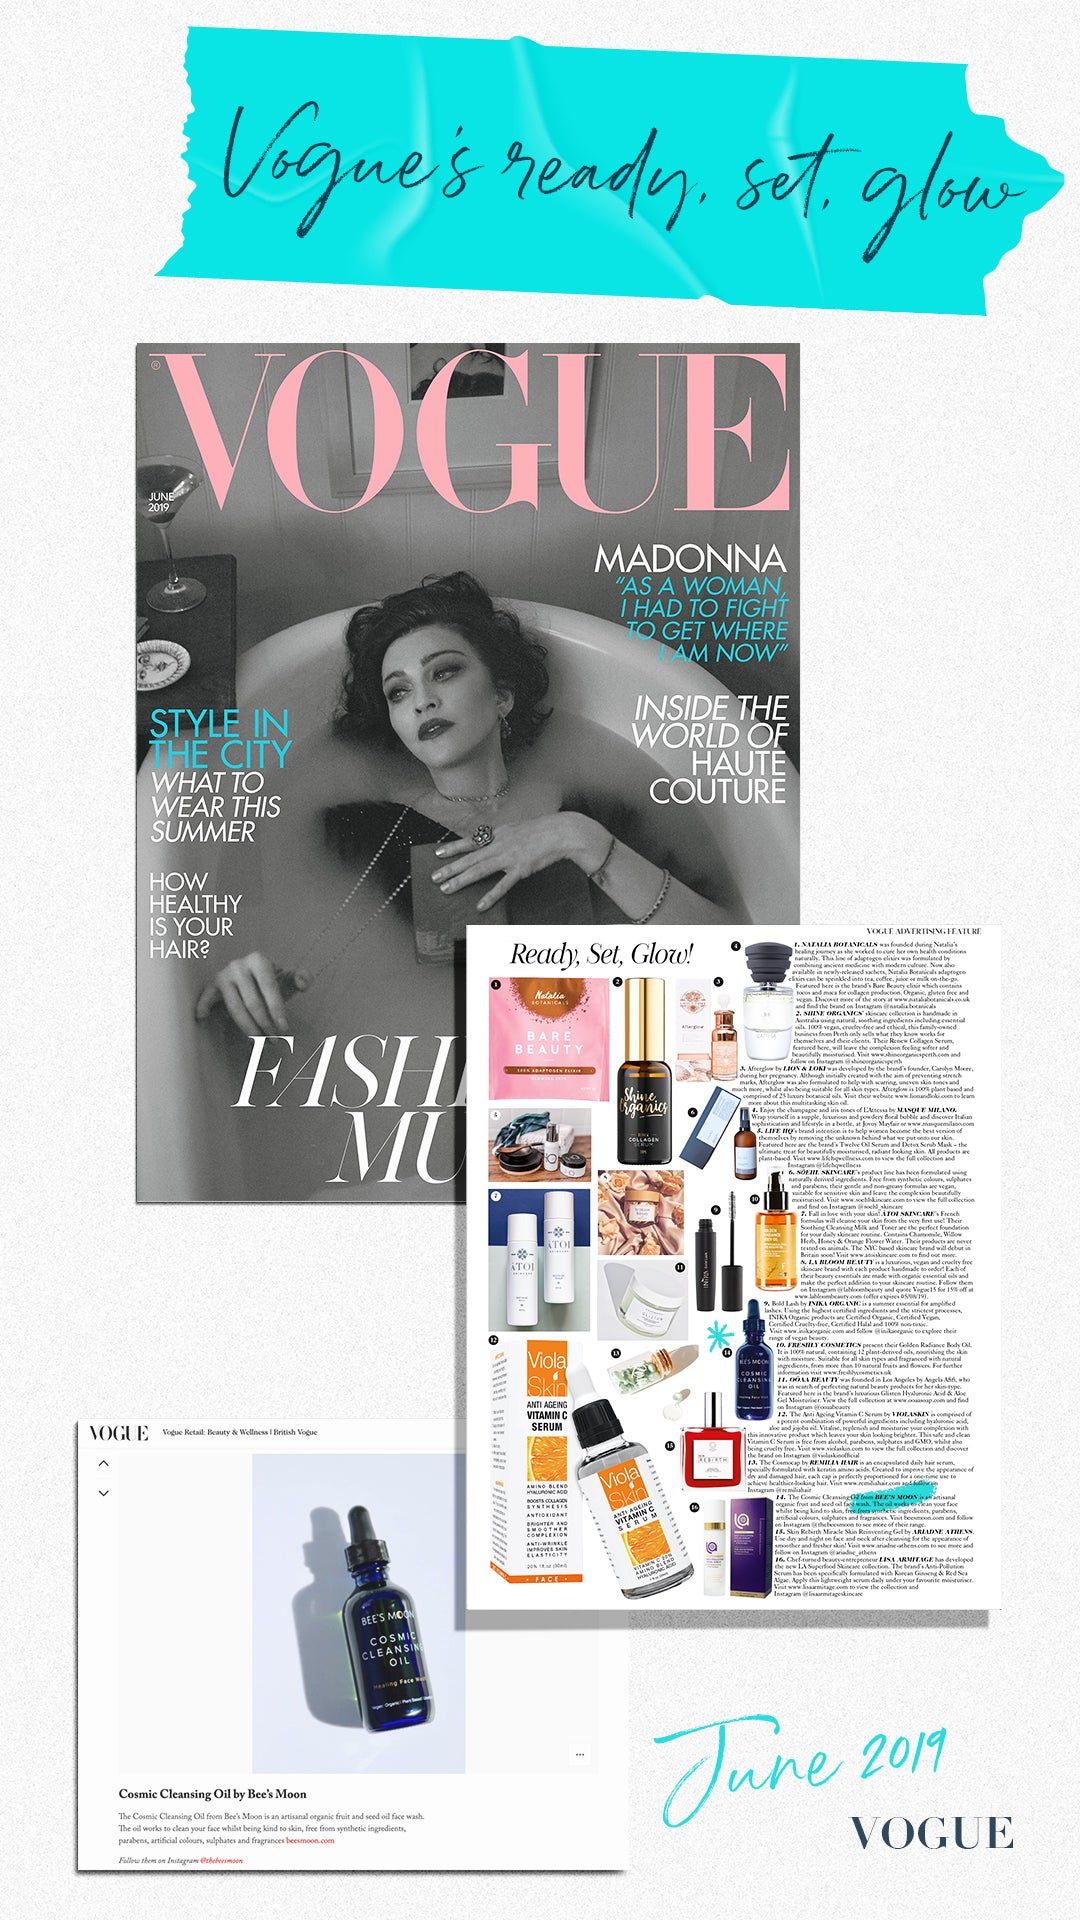 VOGUE and Bee's Moon June 2019 Issue with Madonna